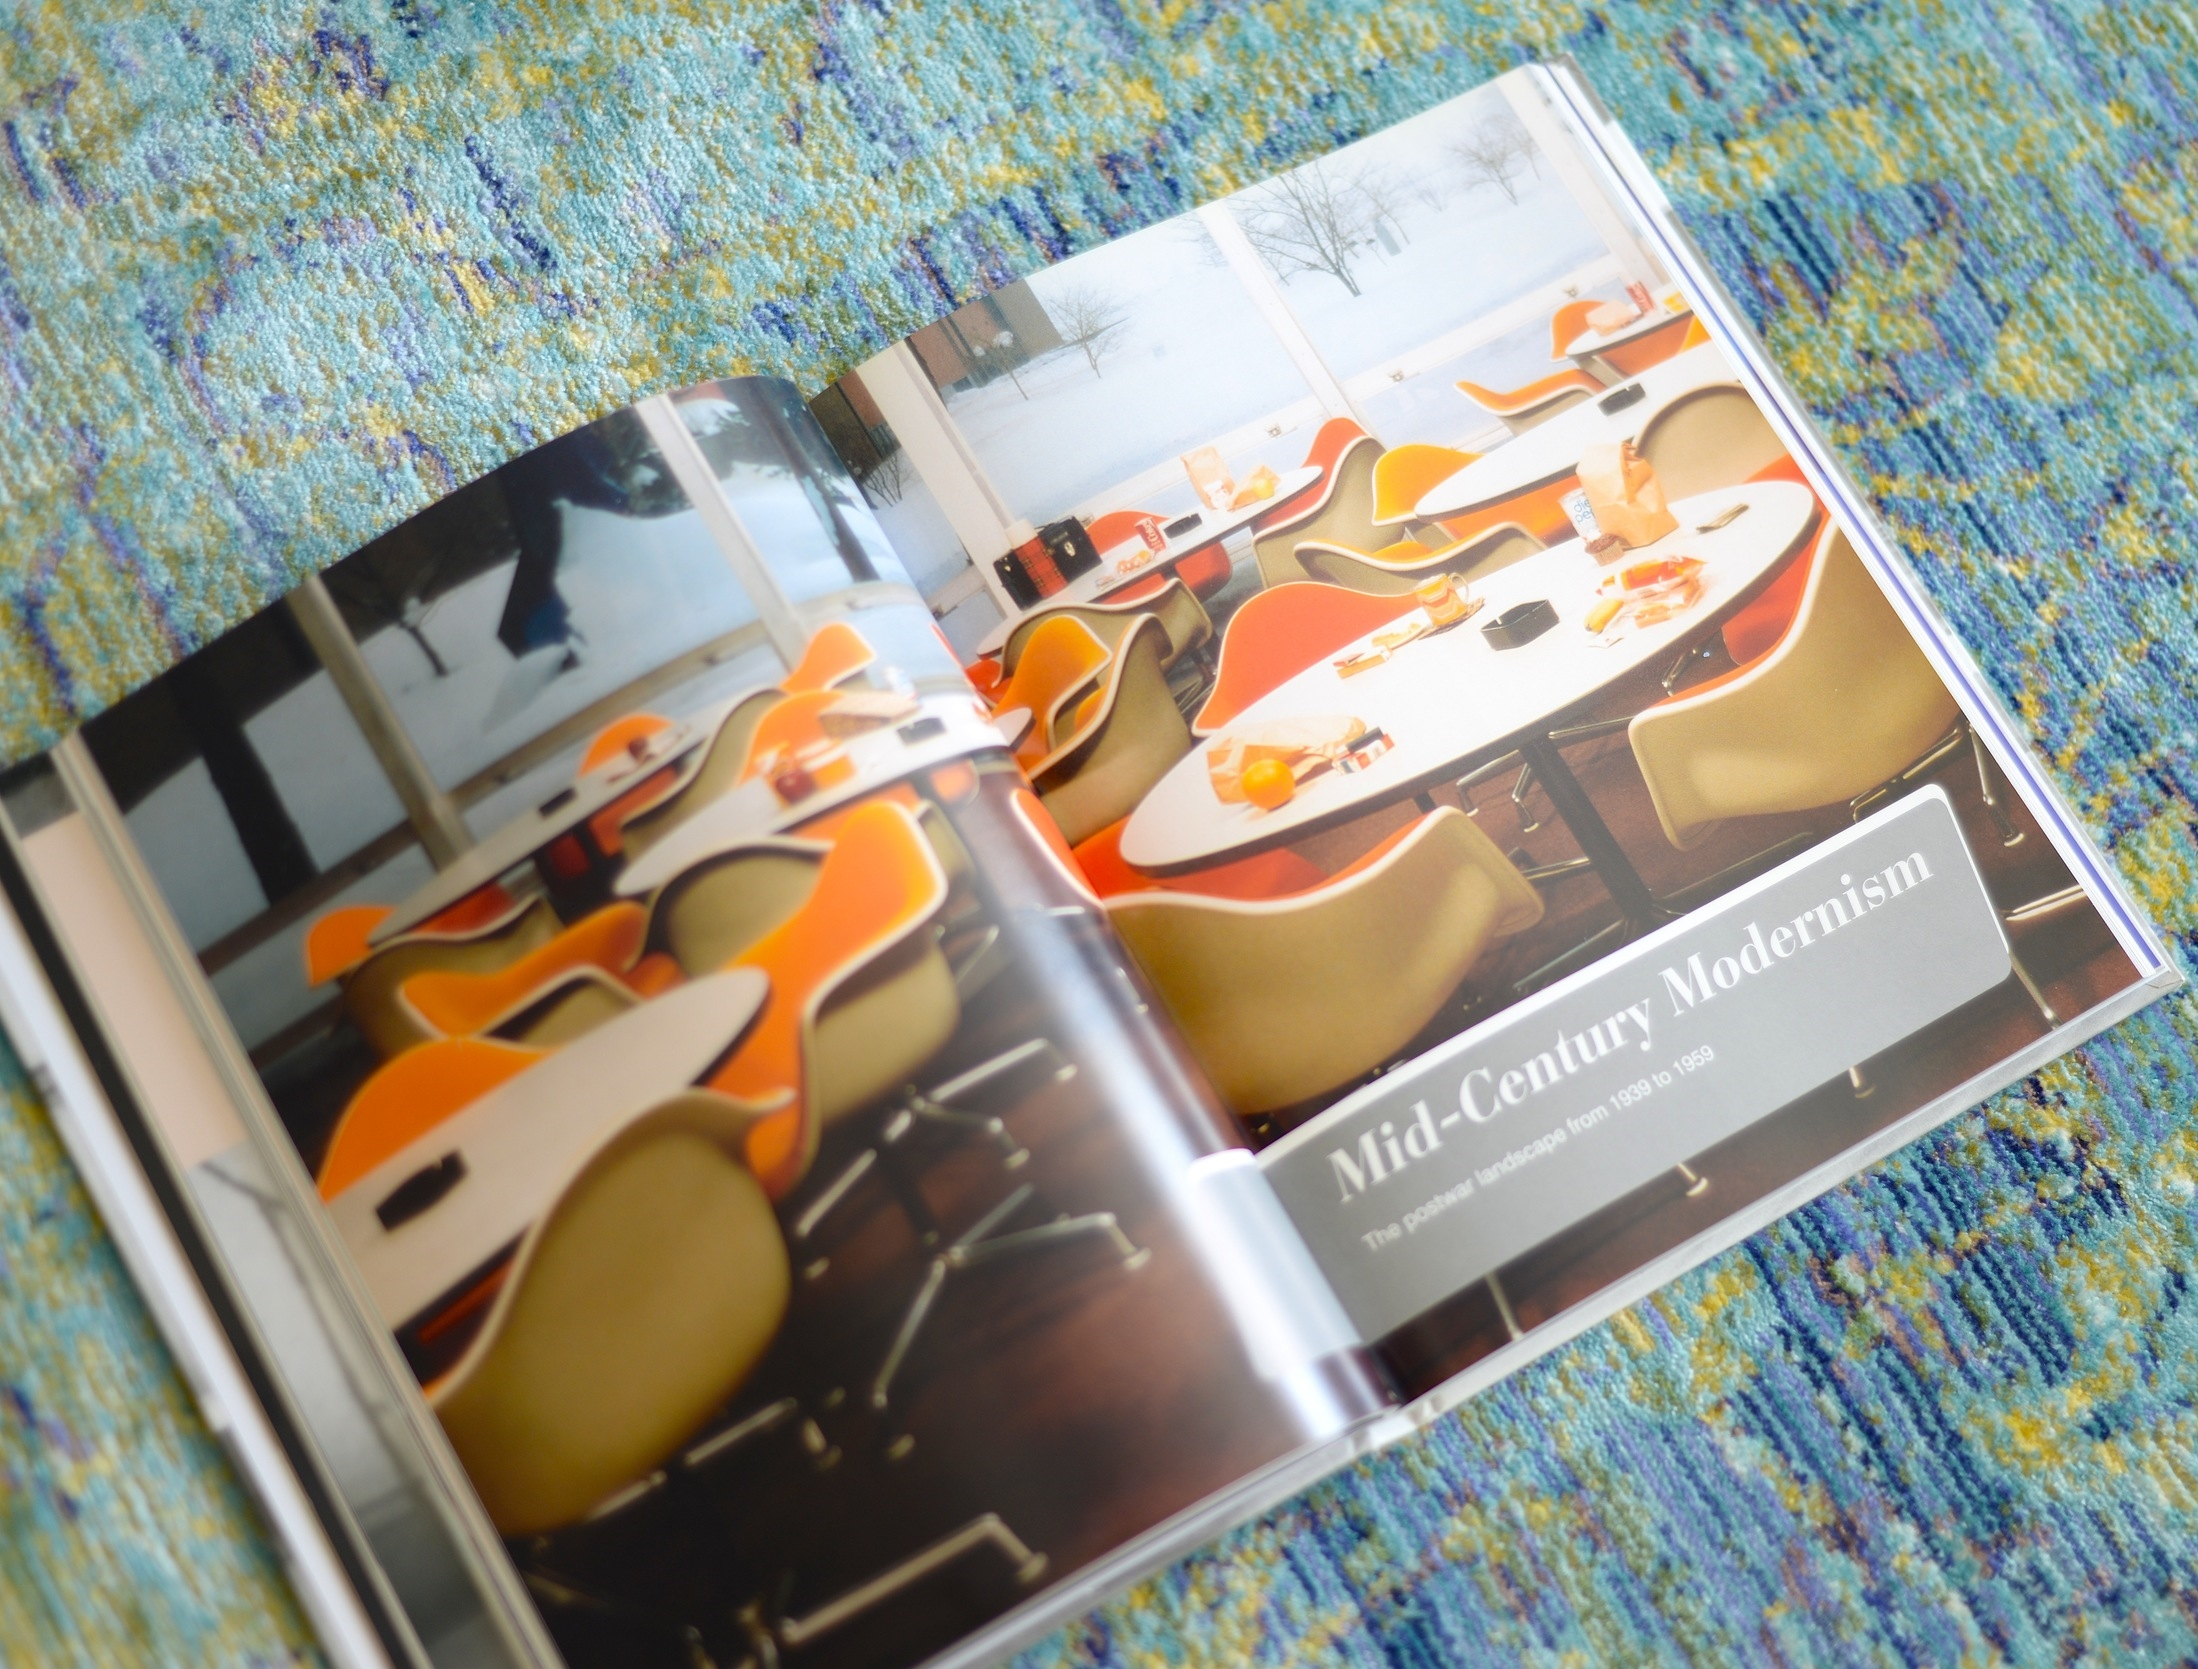 vintage furniture, mid century modern, interior design coffee table book